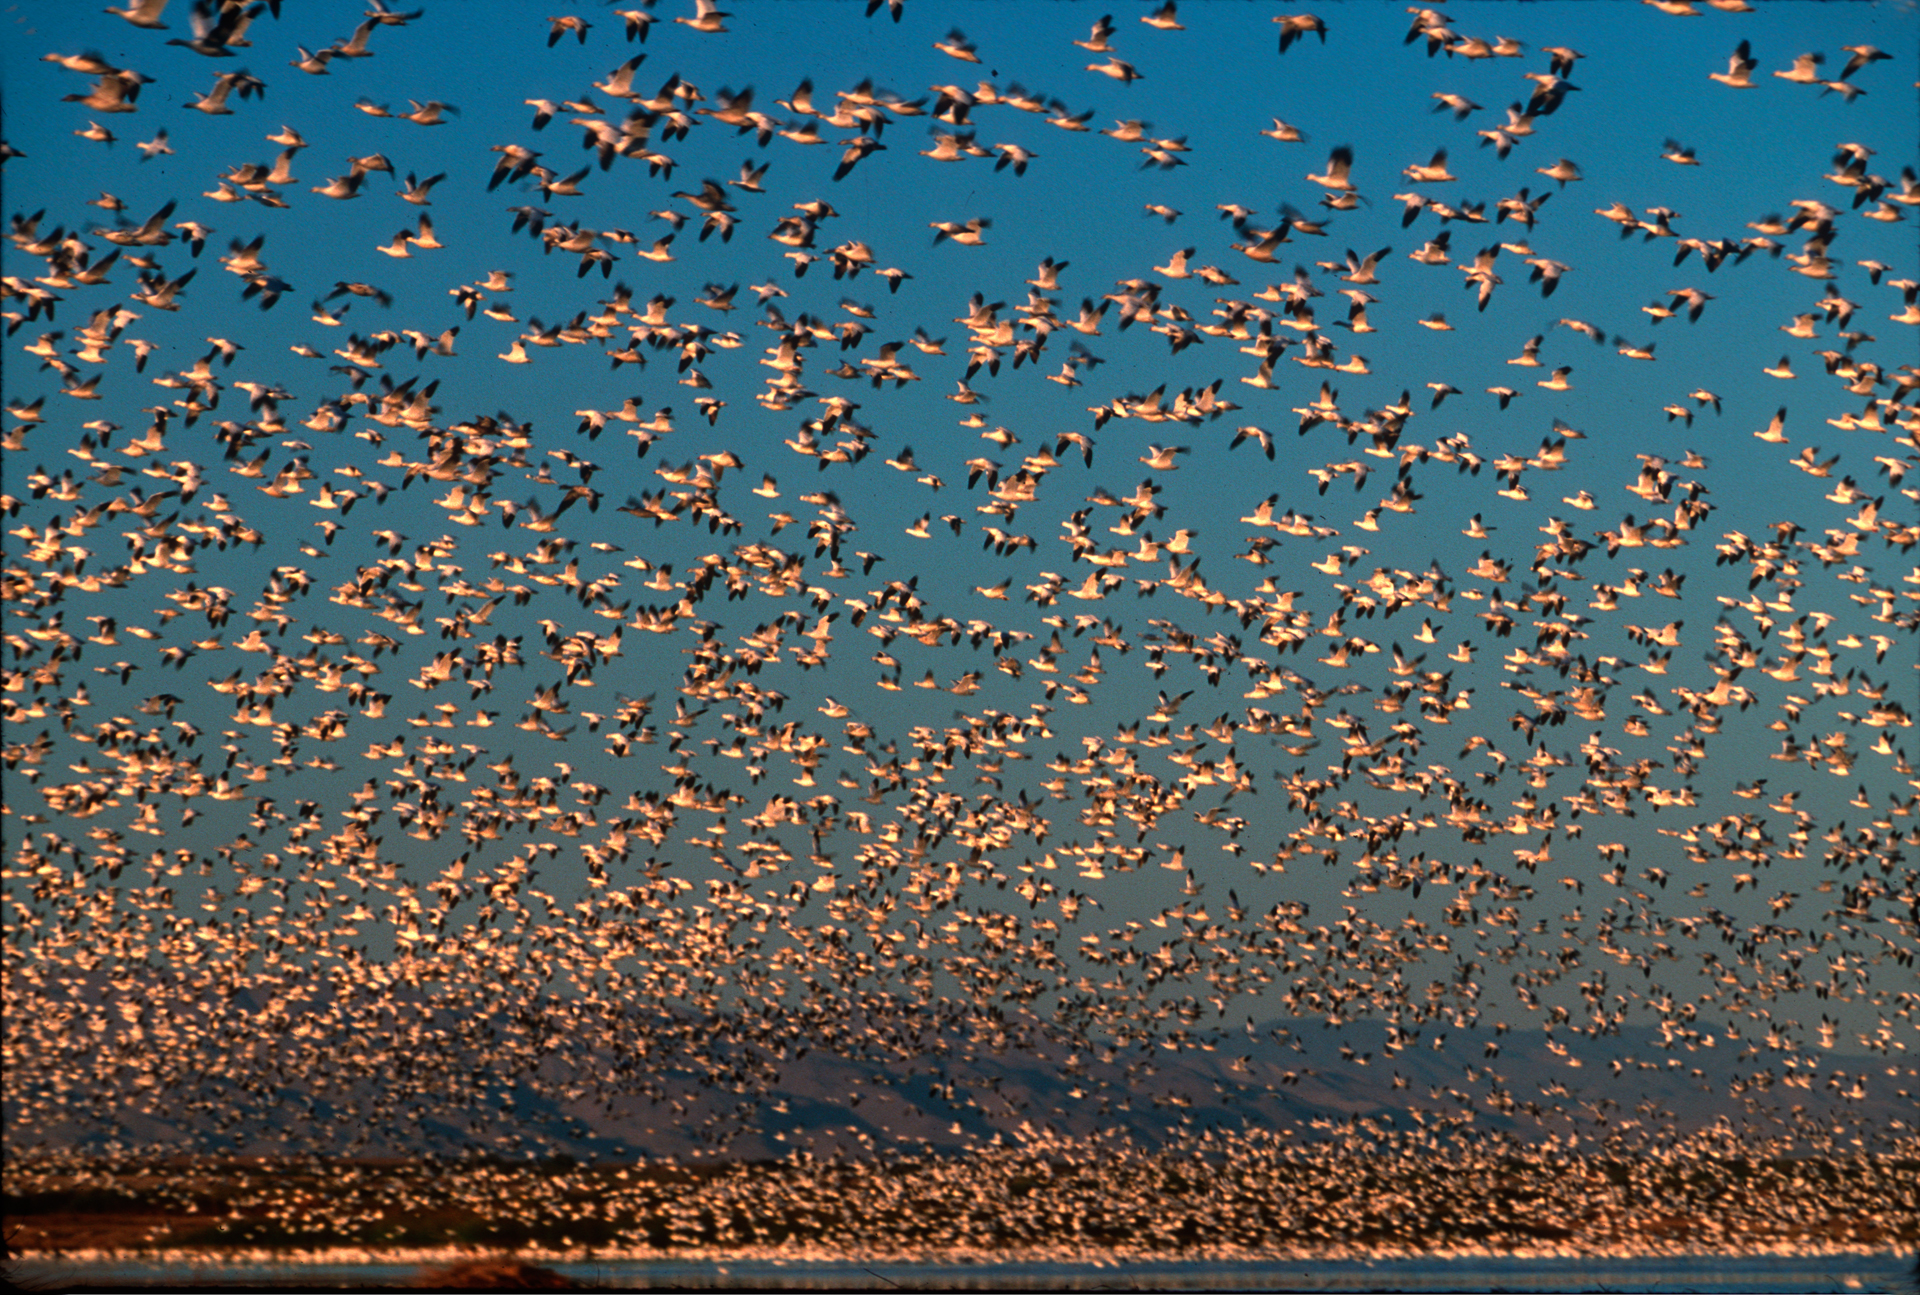 These snow geese are among the thousands of birds that use the Salton Sea for migration along the Pacific Flyway or as a wintering site.  Calipatria